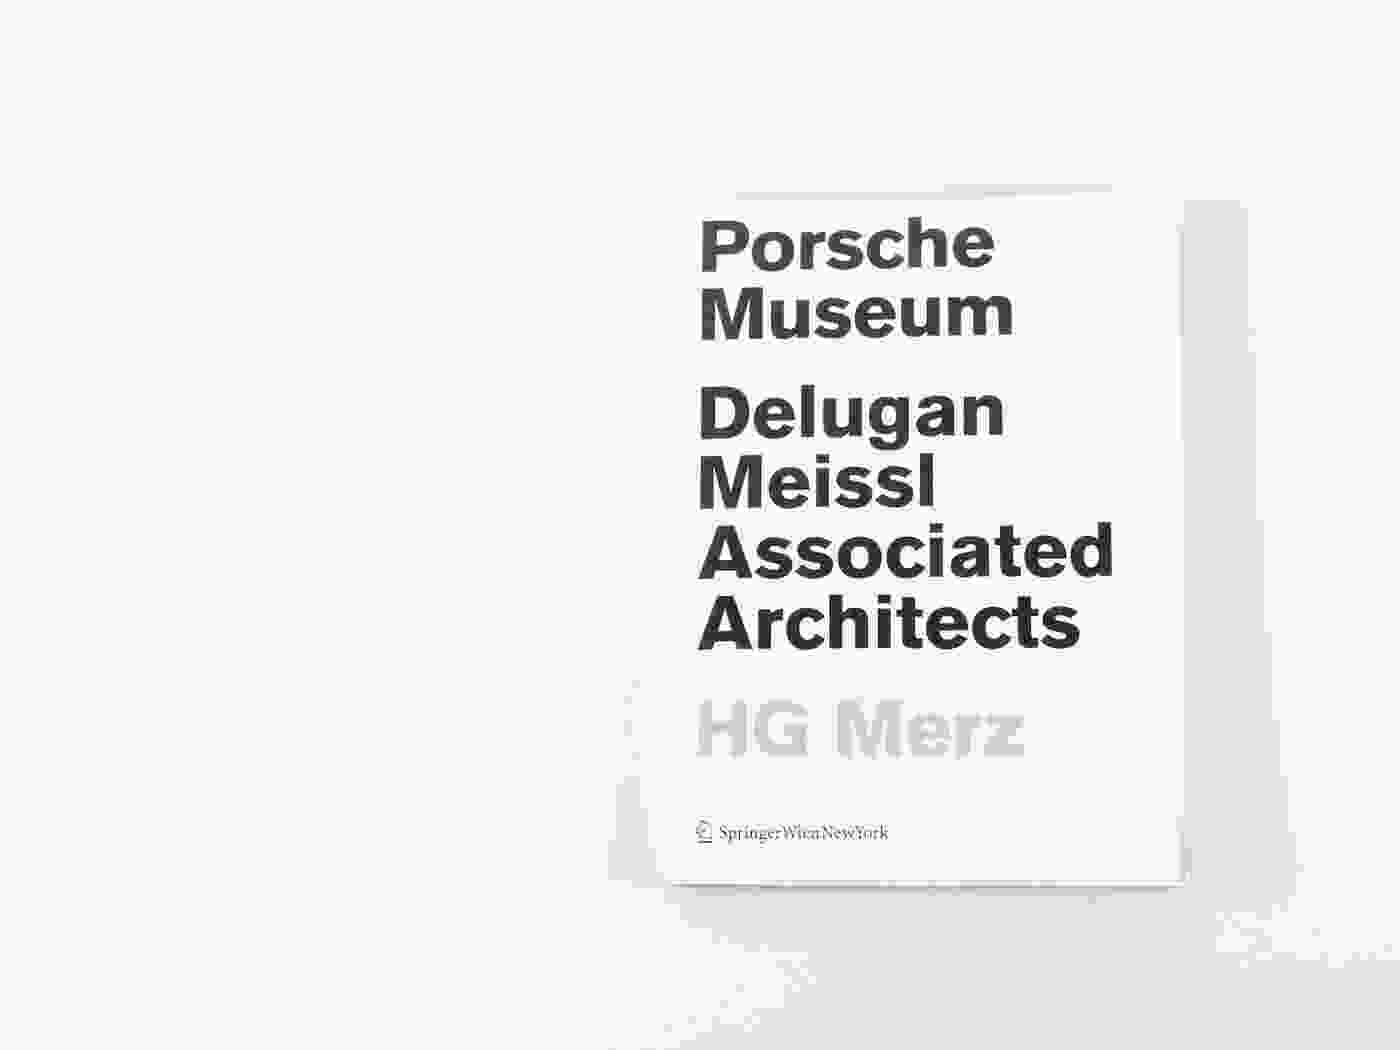 Porsche Museum Delugan Meissl Associated Architects Book 01